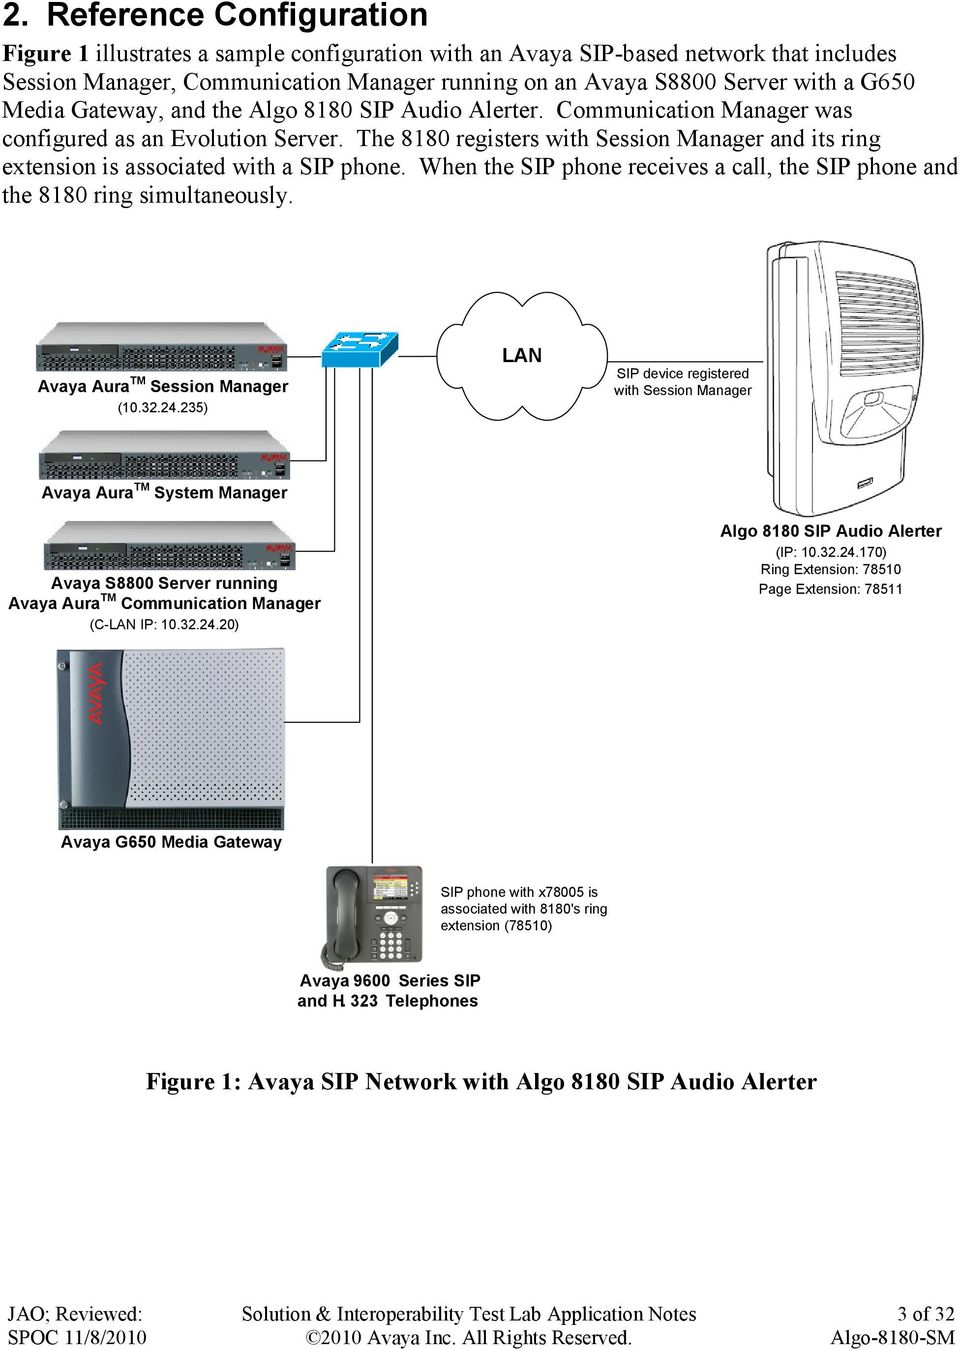 The 8180 registers with Session Manager and its ring extension is associated with a SIP phone. When the SIP phone receives a call, the SIP phone and the 8180 ring simultaneously.